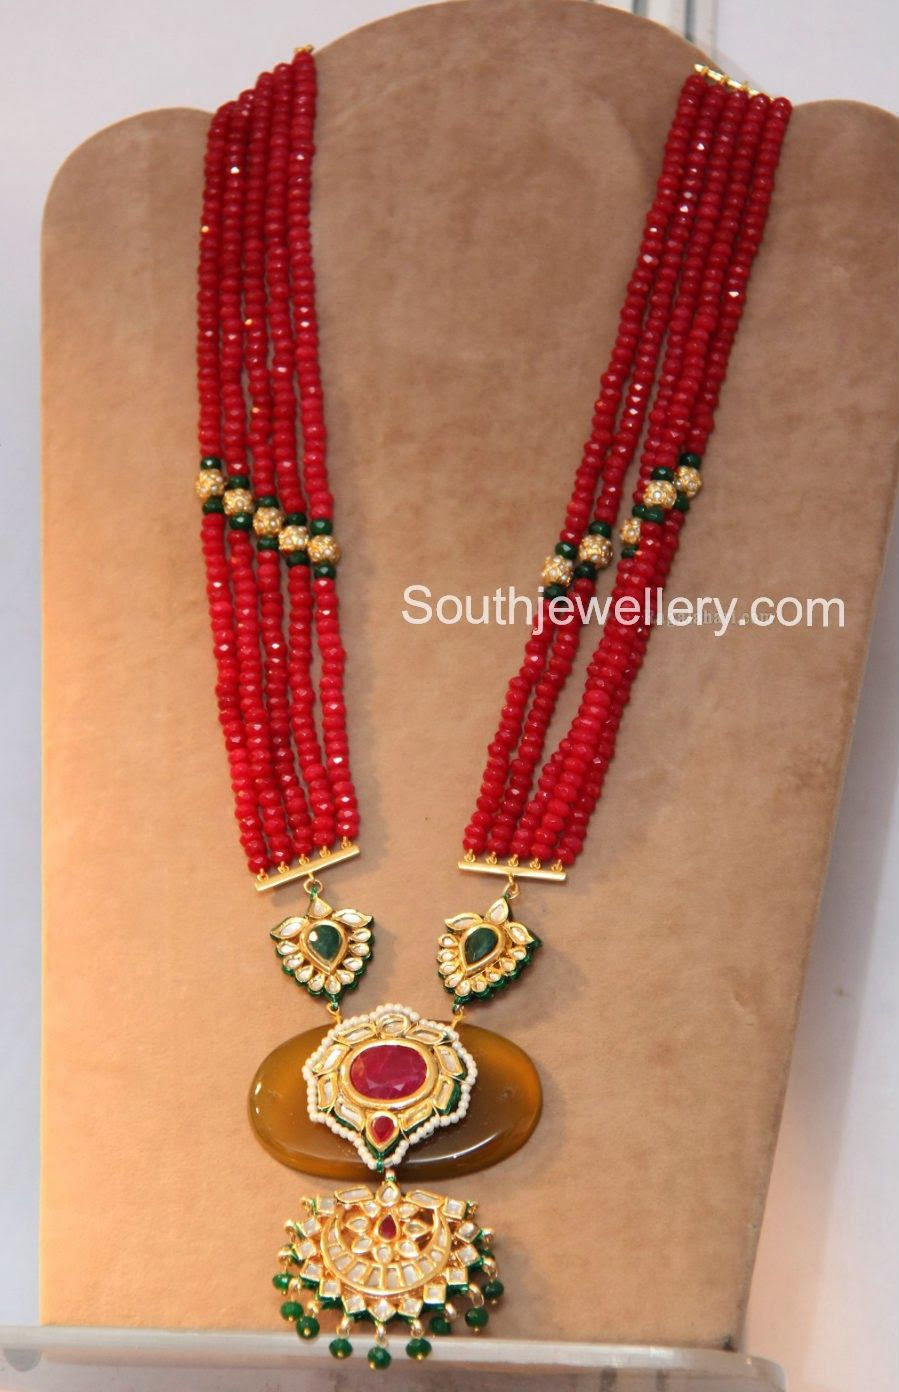 Latest gold necklace designs in grams pachi necklace latest jewellery - Fashion Jewellery Latest Jewelry Designs Page 3 Of 4 Jewellery Designs